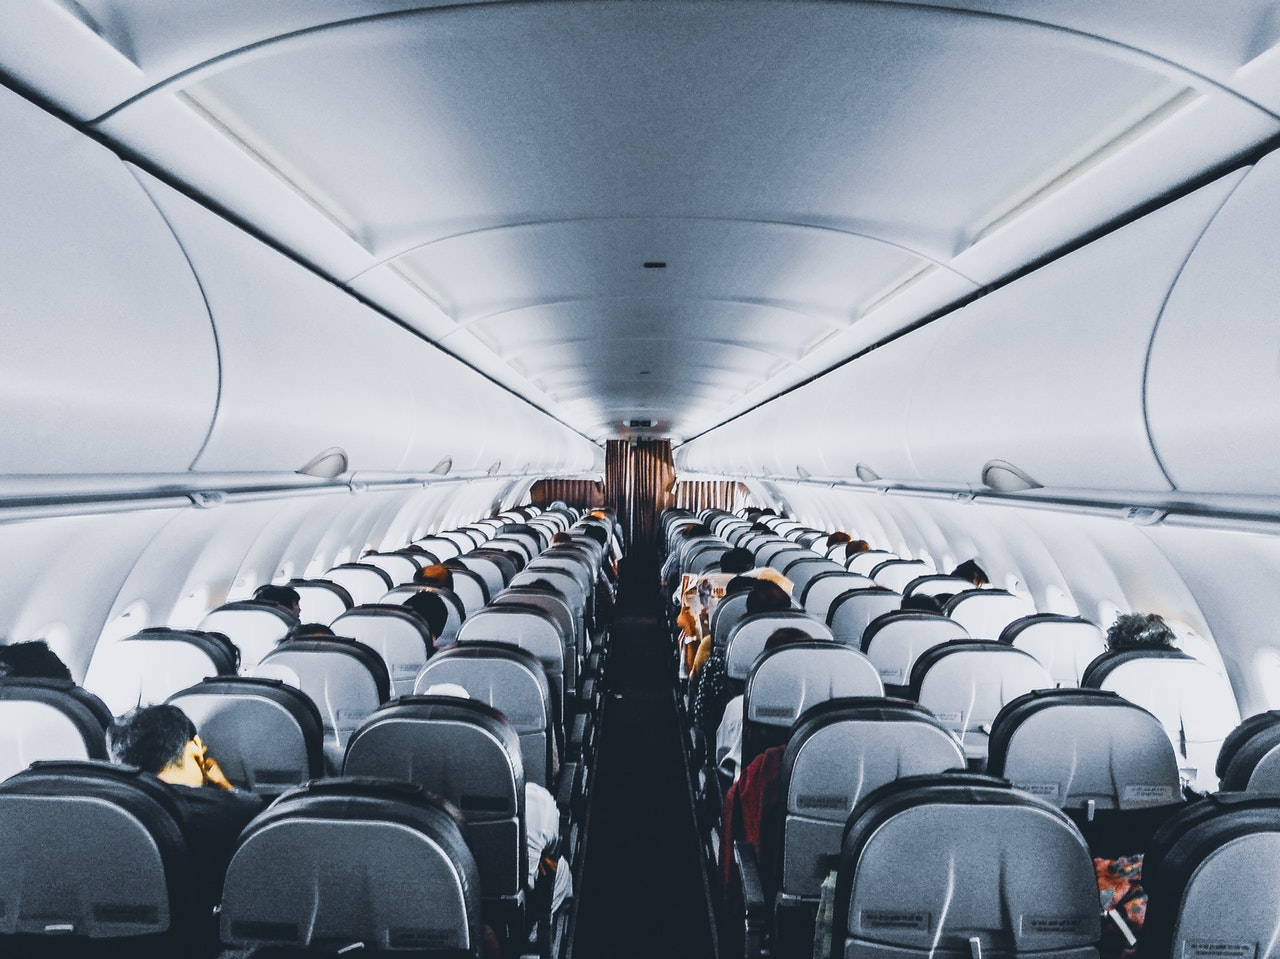 Childfree Flights: Why Don't These Exist? – Childfree Dating